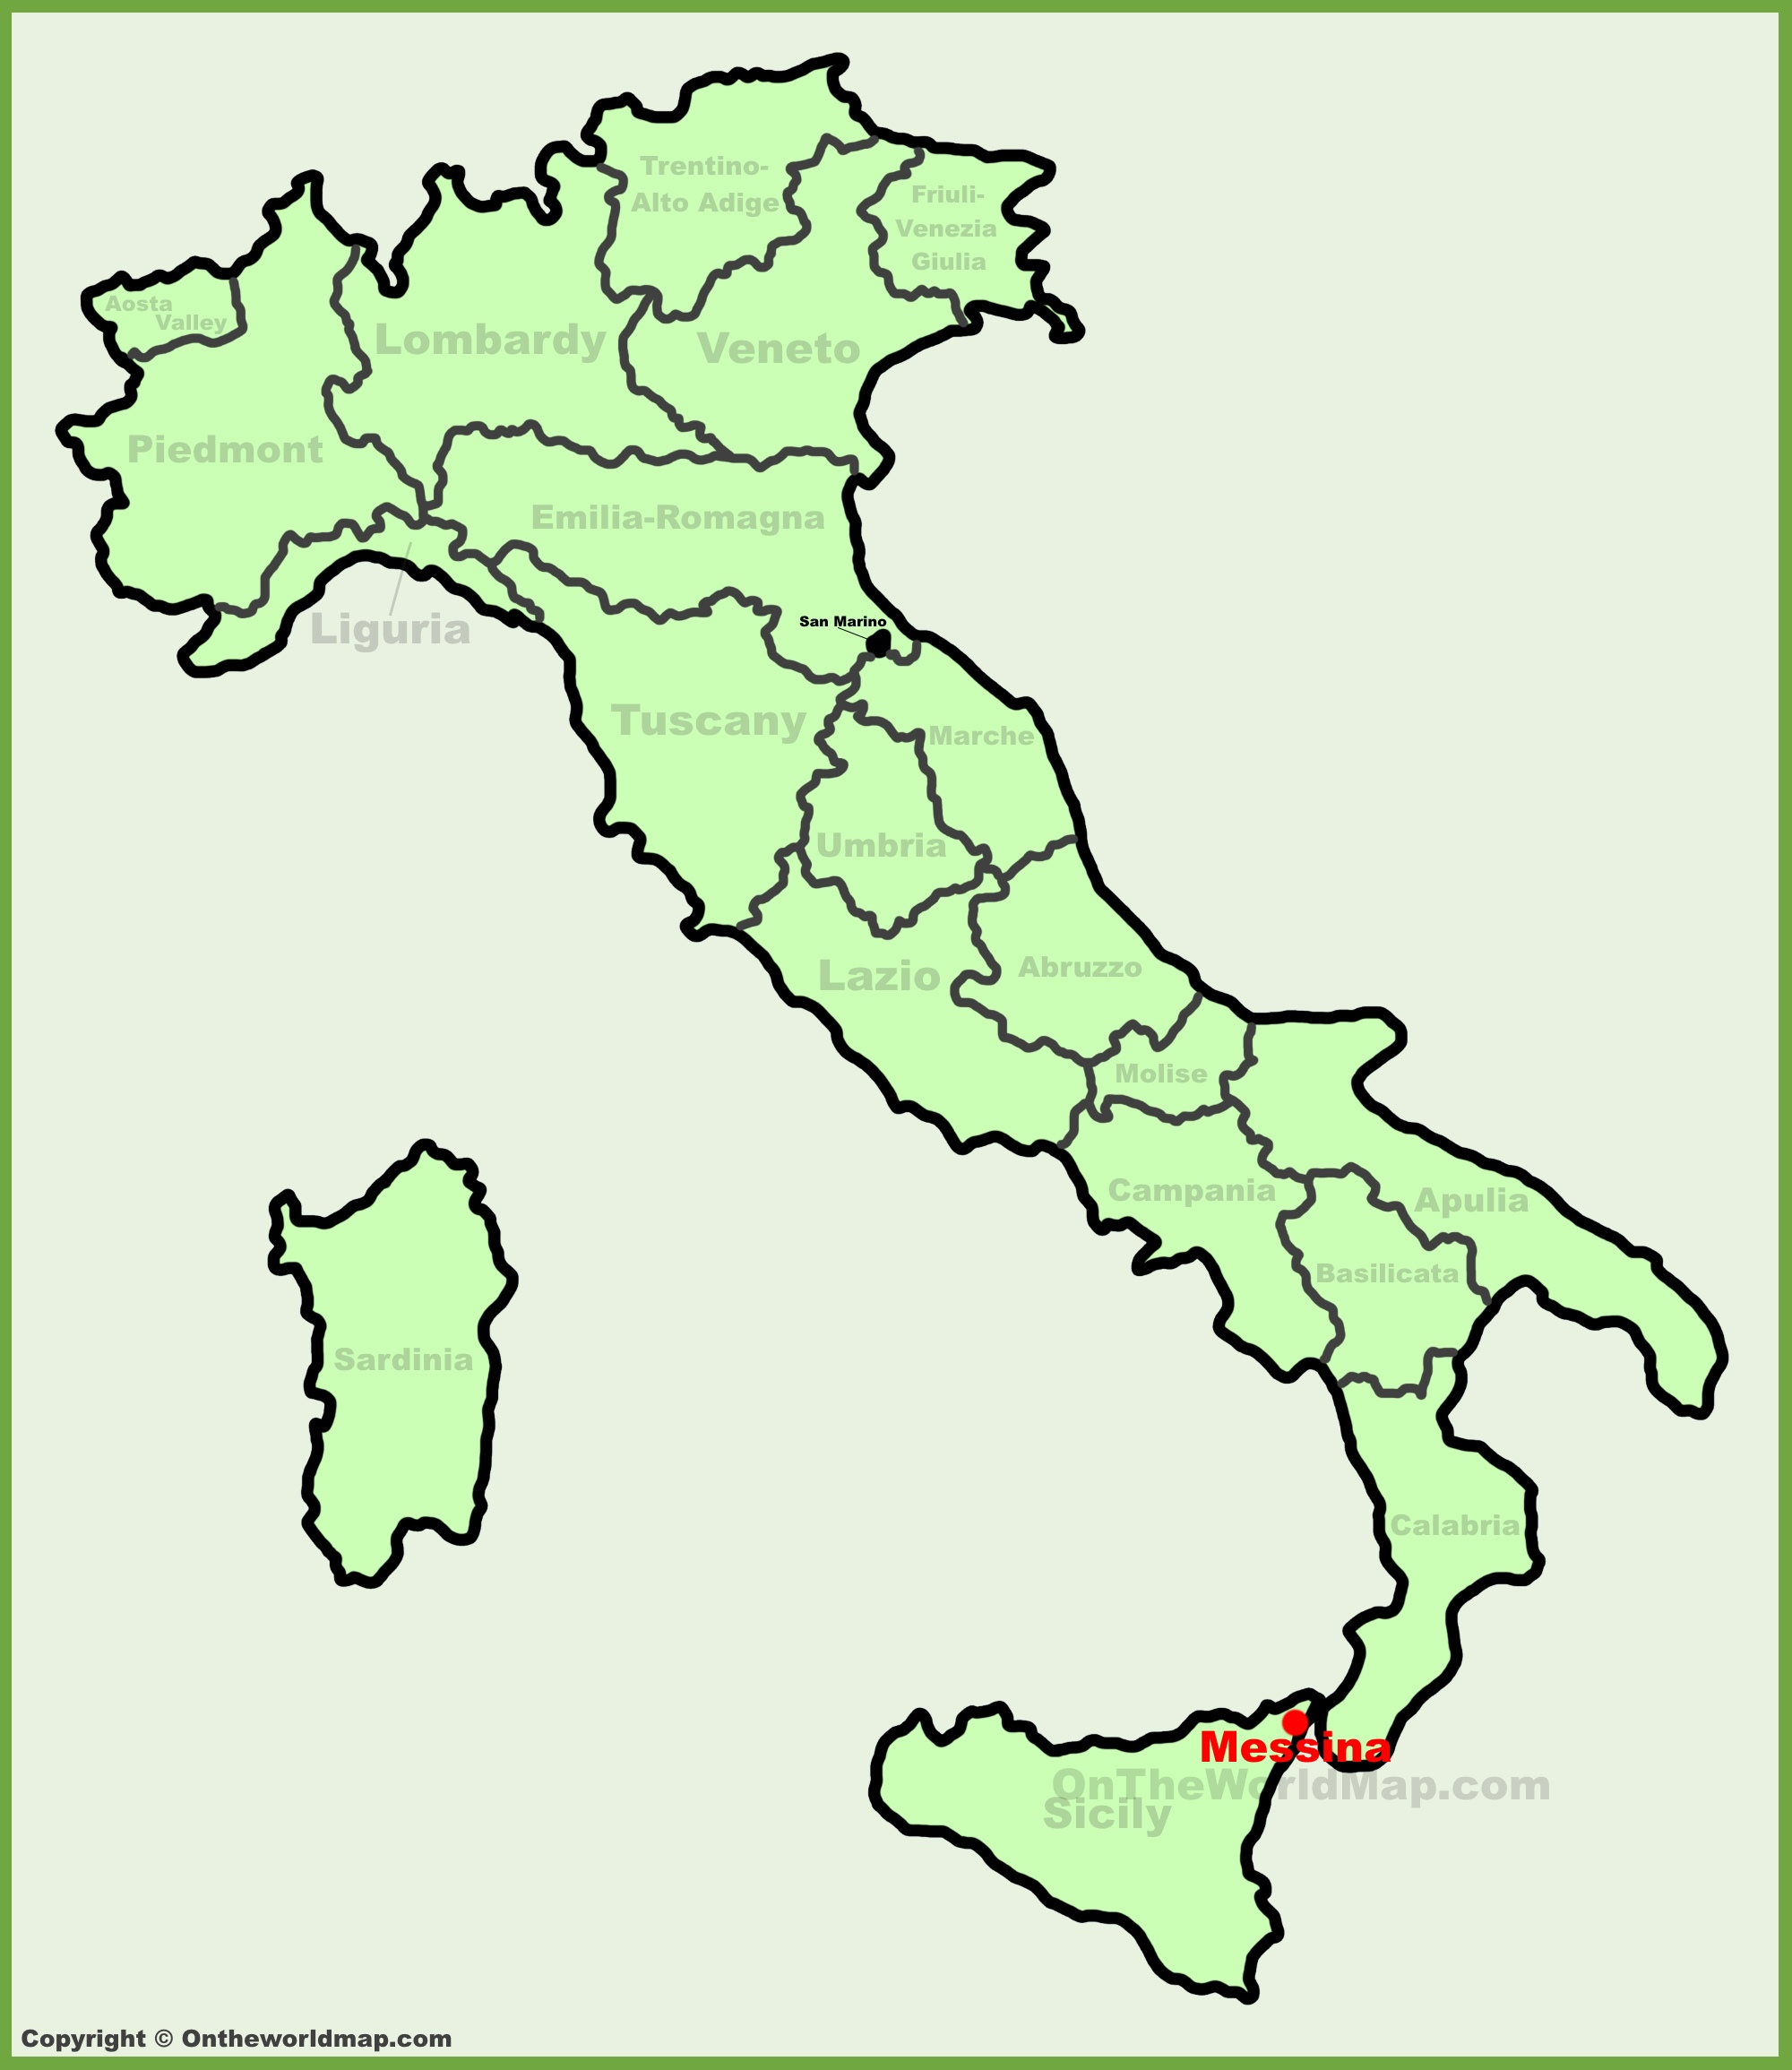 Messina location on the Italy map